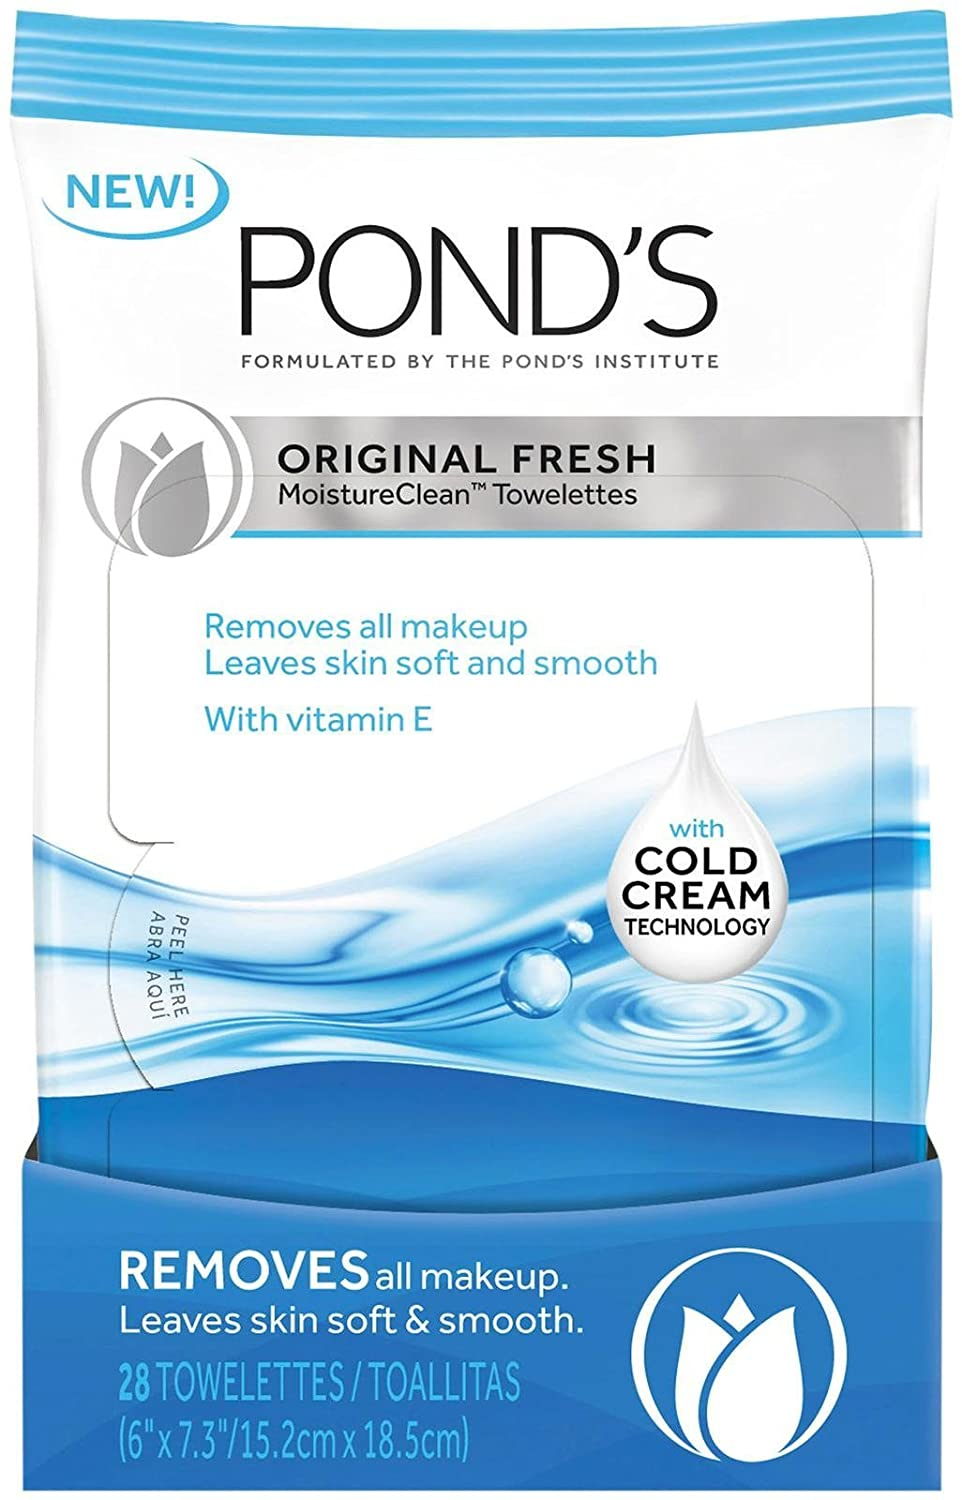 Pond's Original Fresh MoistureClean Towelettes With Cold Cream Technology 28 count